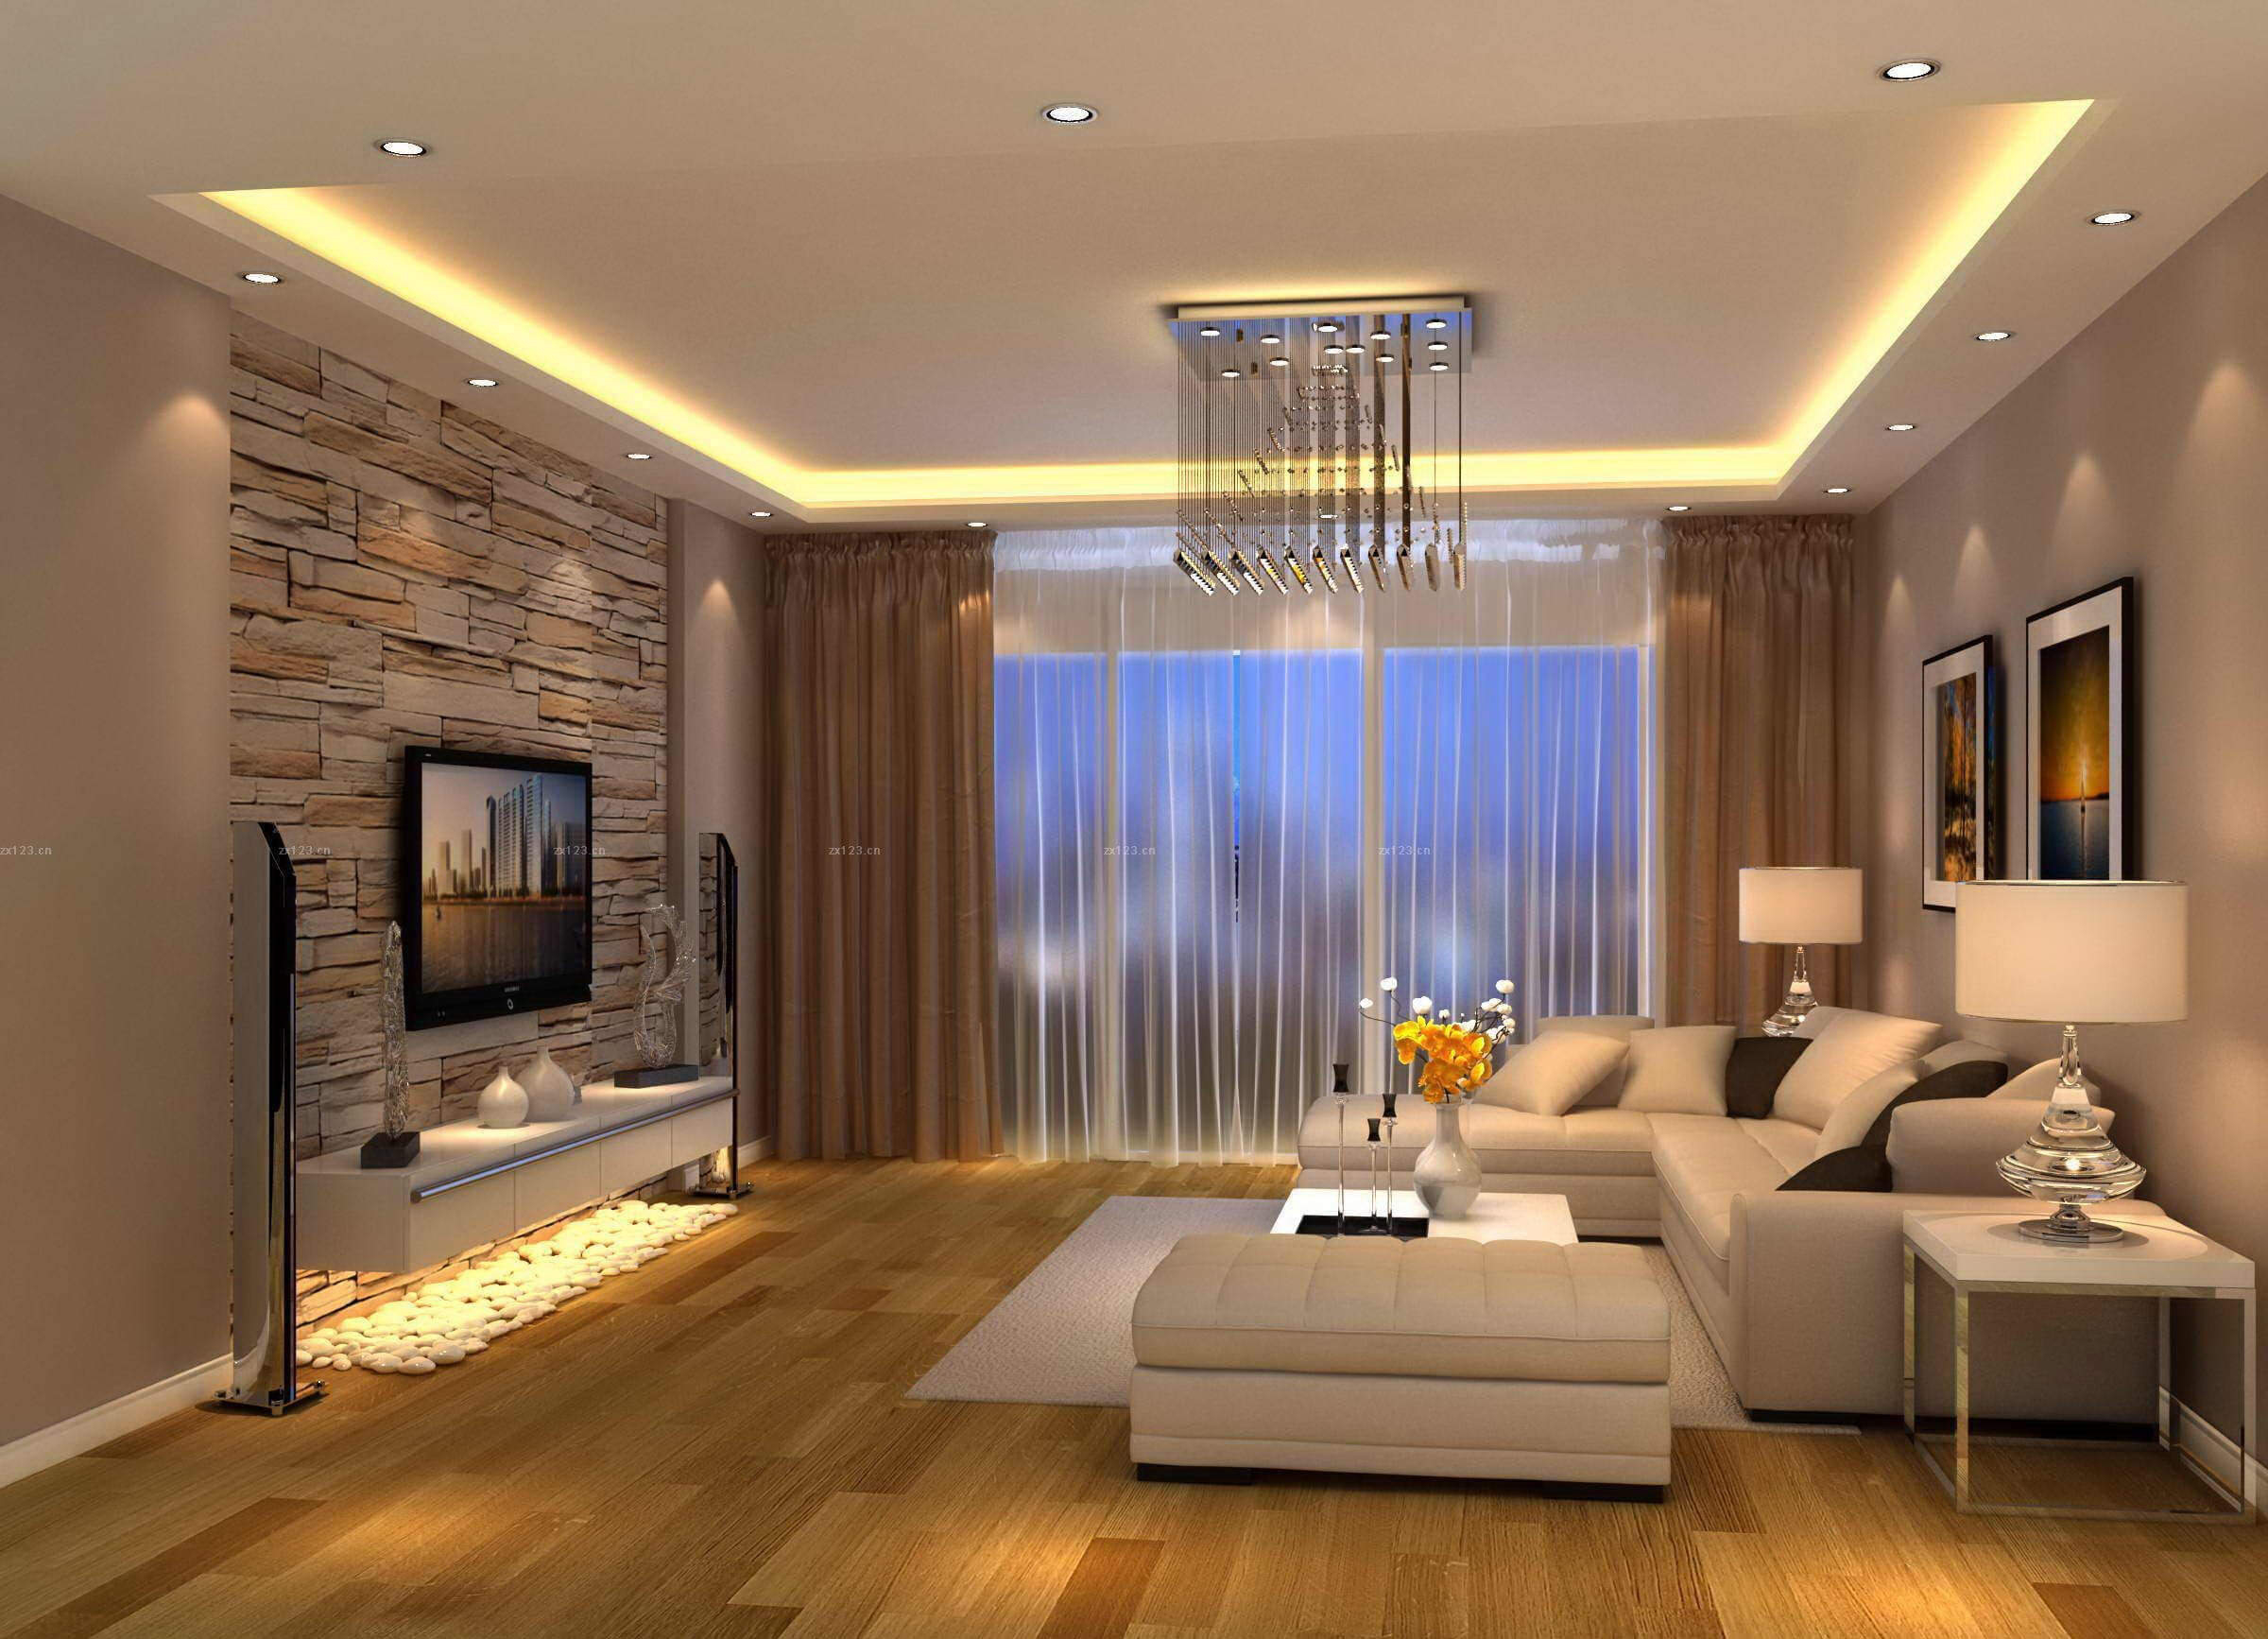 Decorating your living room properly will. 19 Spectacular Living Room Lighting Design Ideas